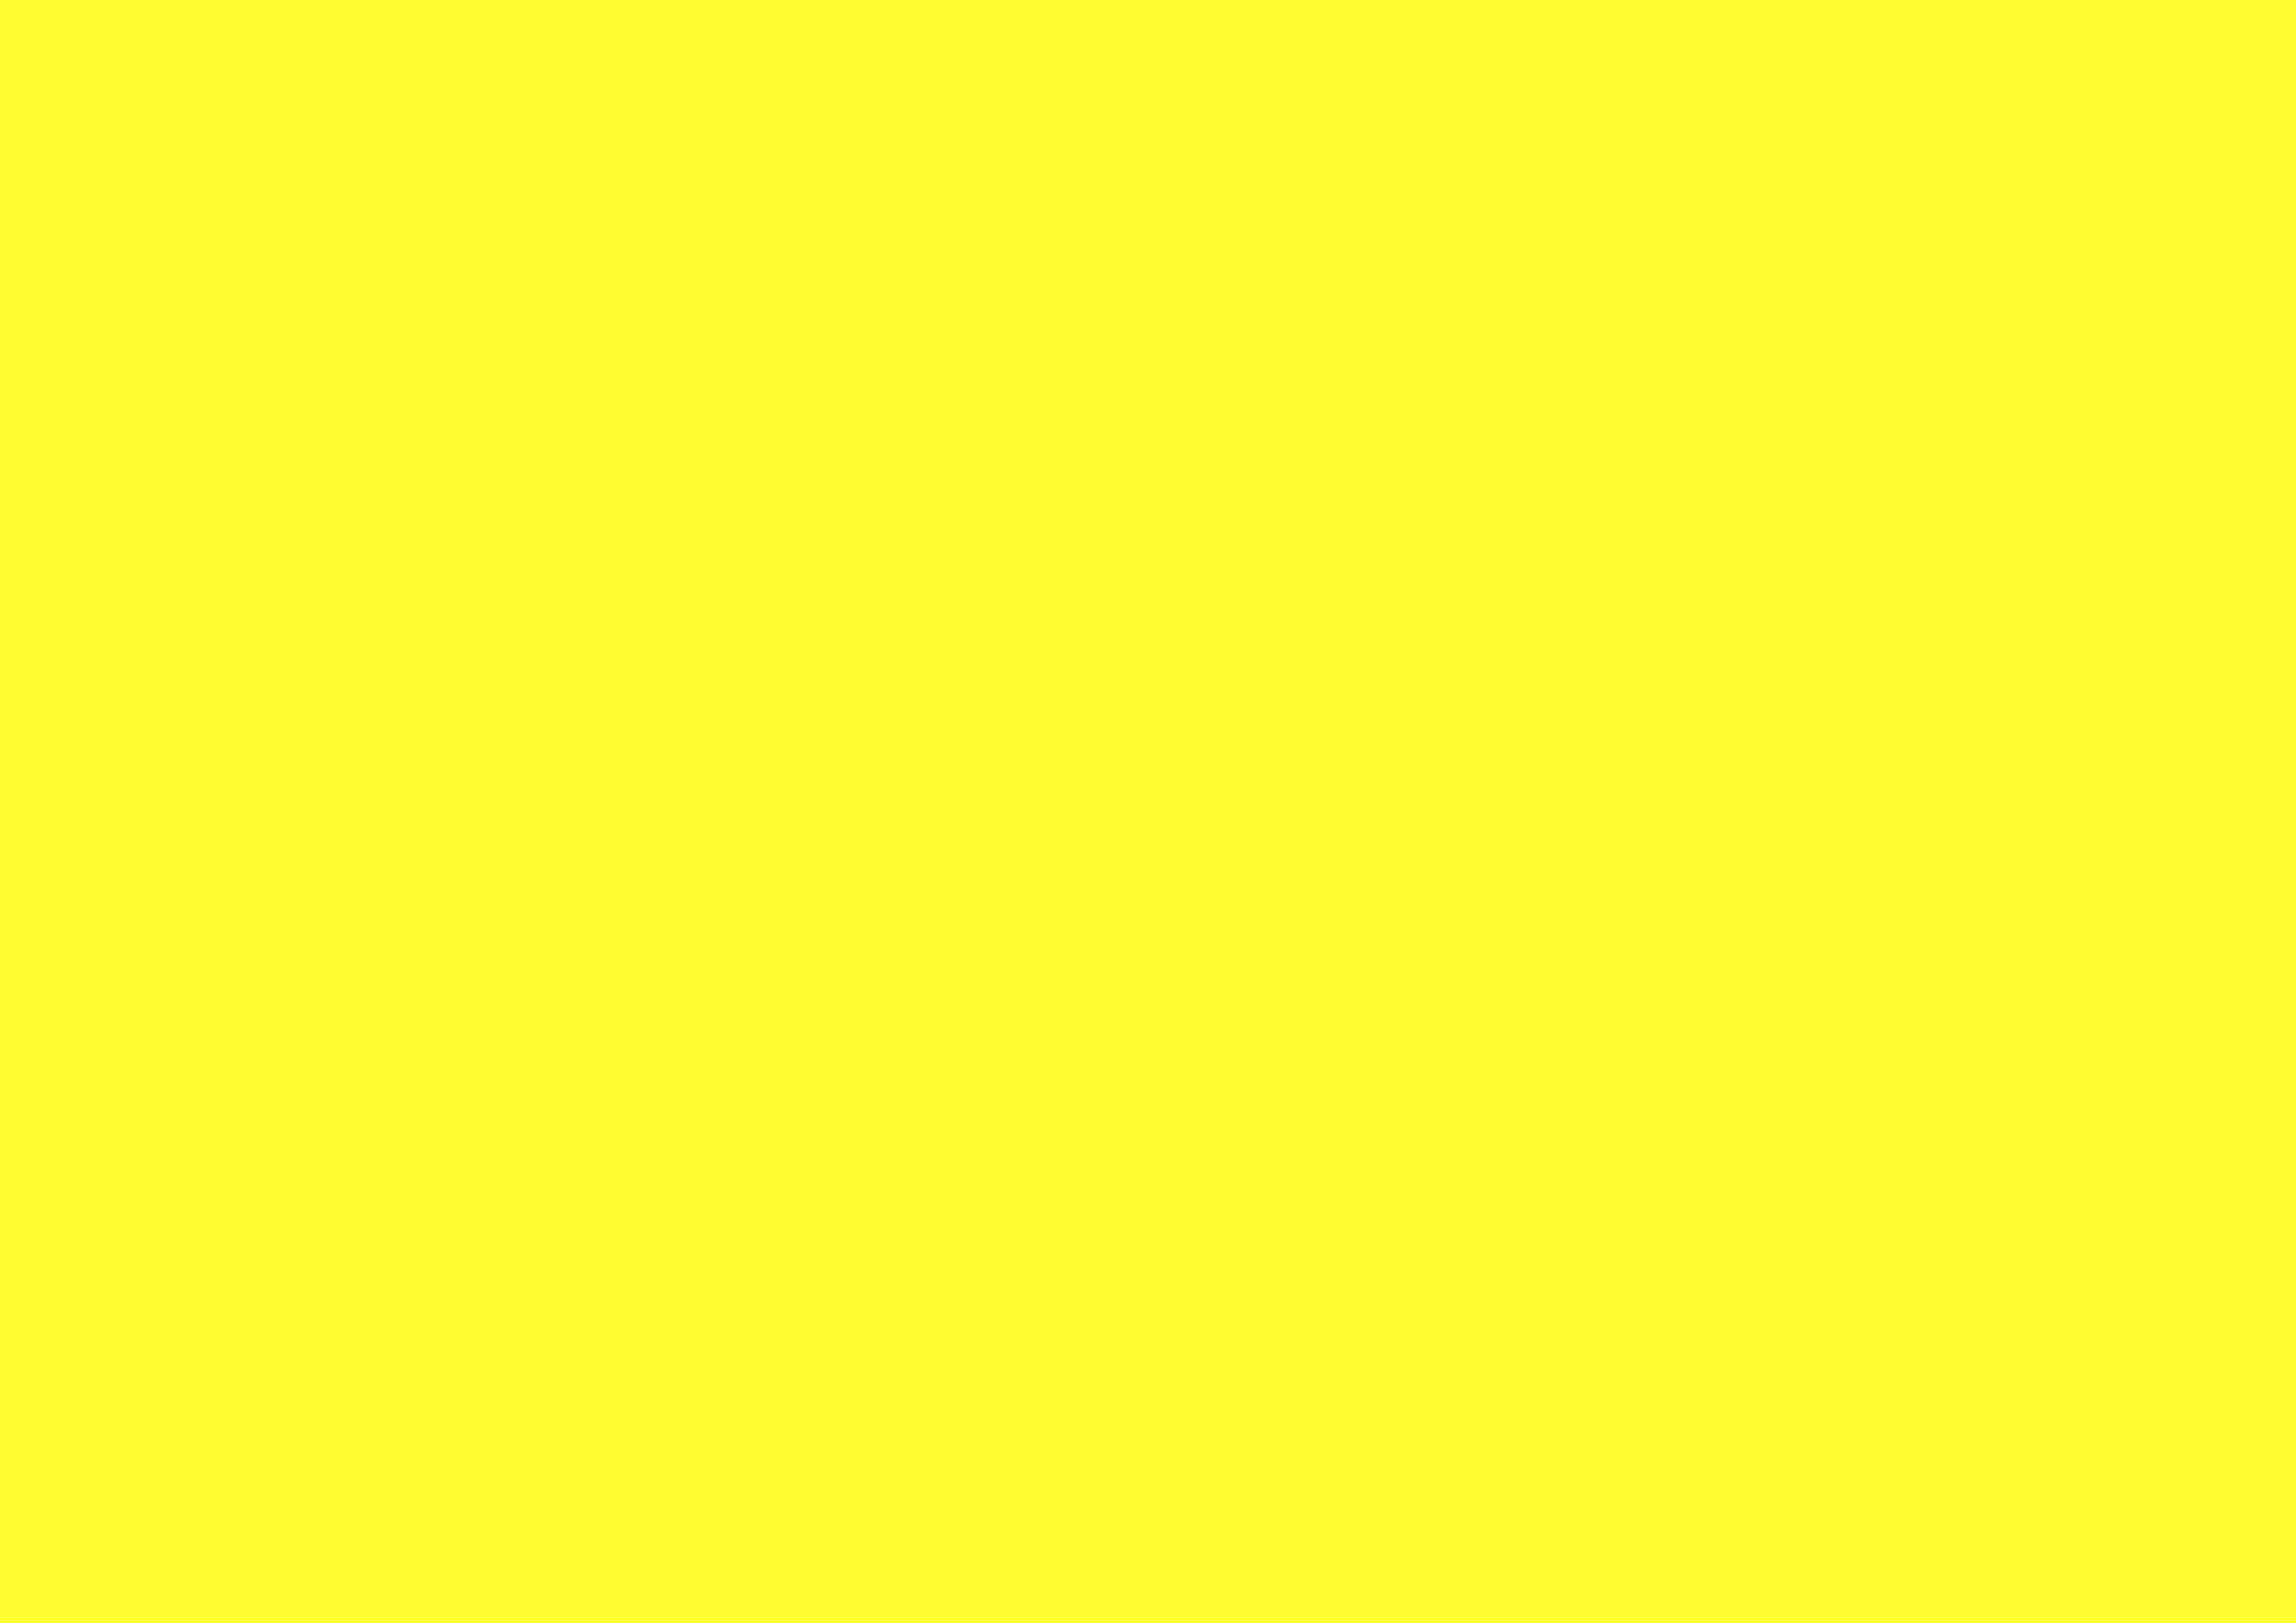 3508x2480 Yellow RYB Solid Color Background